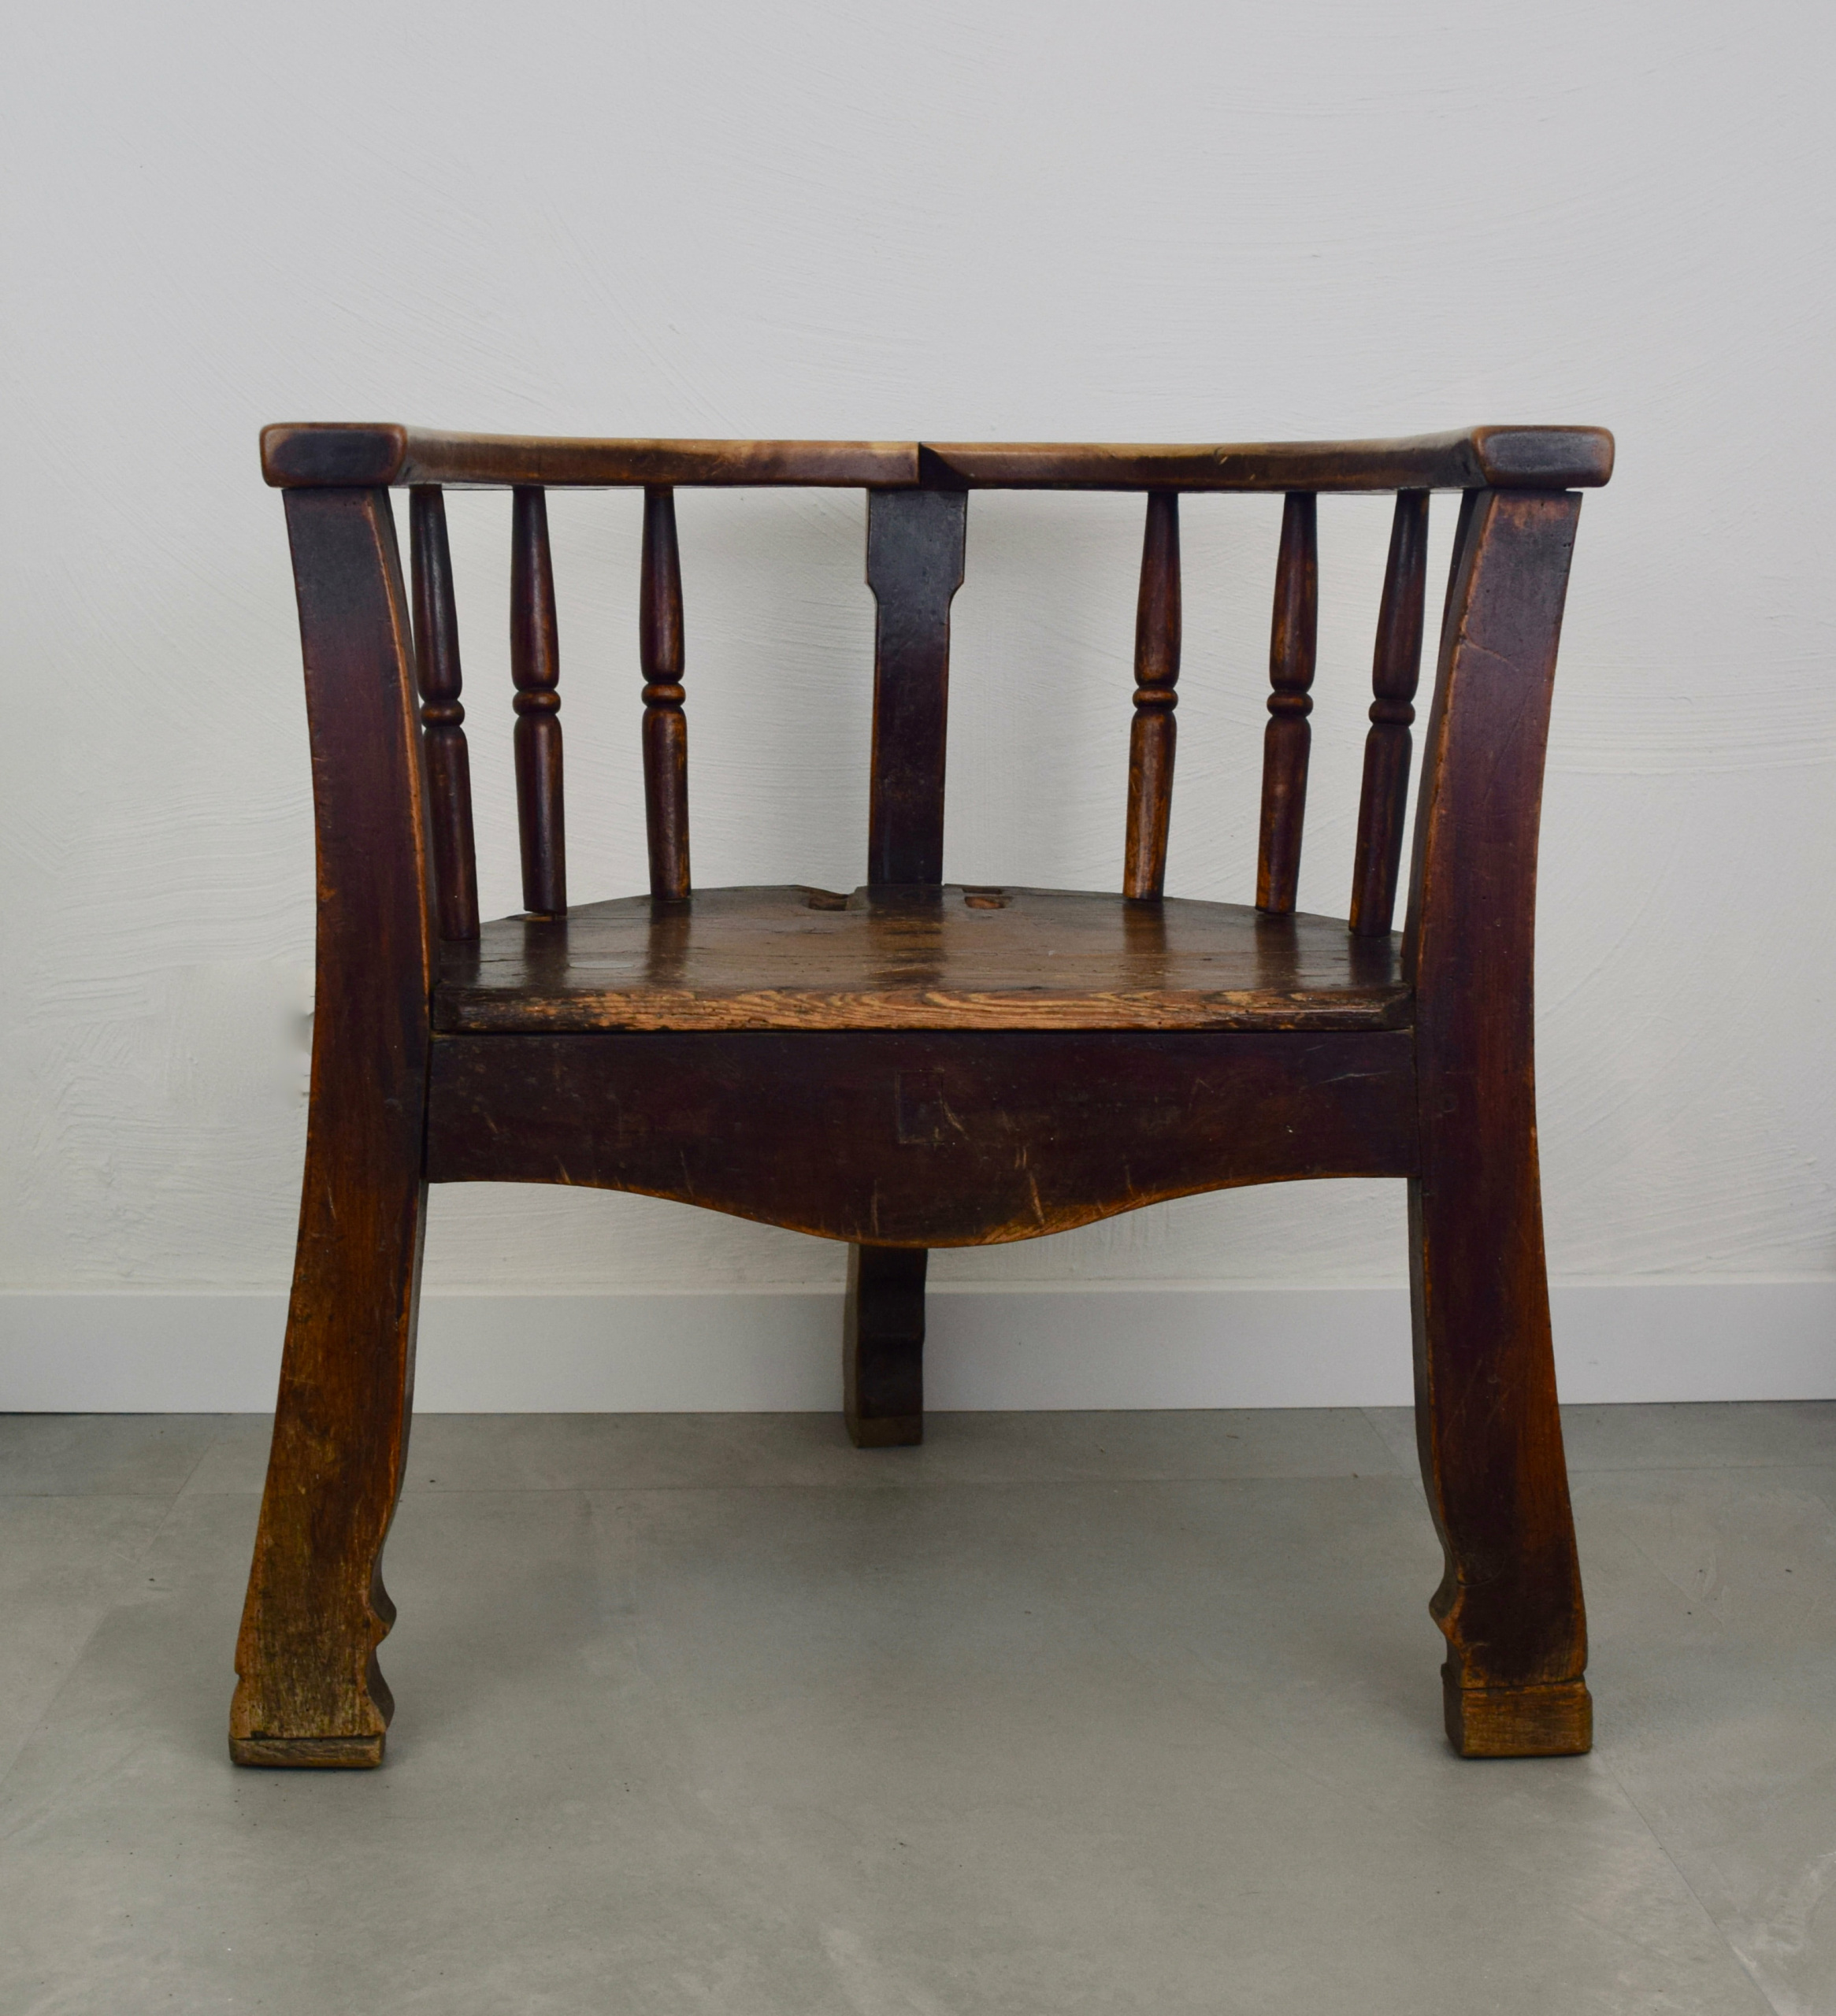 Wooden Captain's Chair, 17th Century, the Netherlands